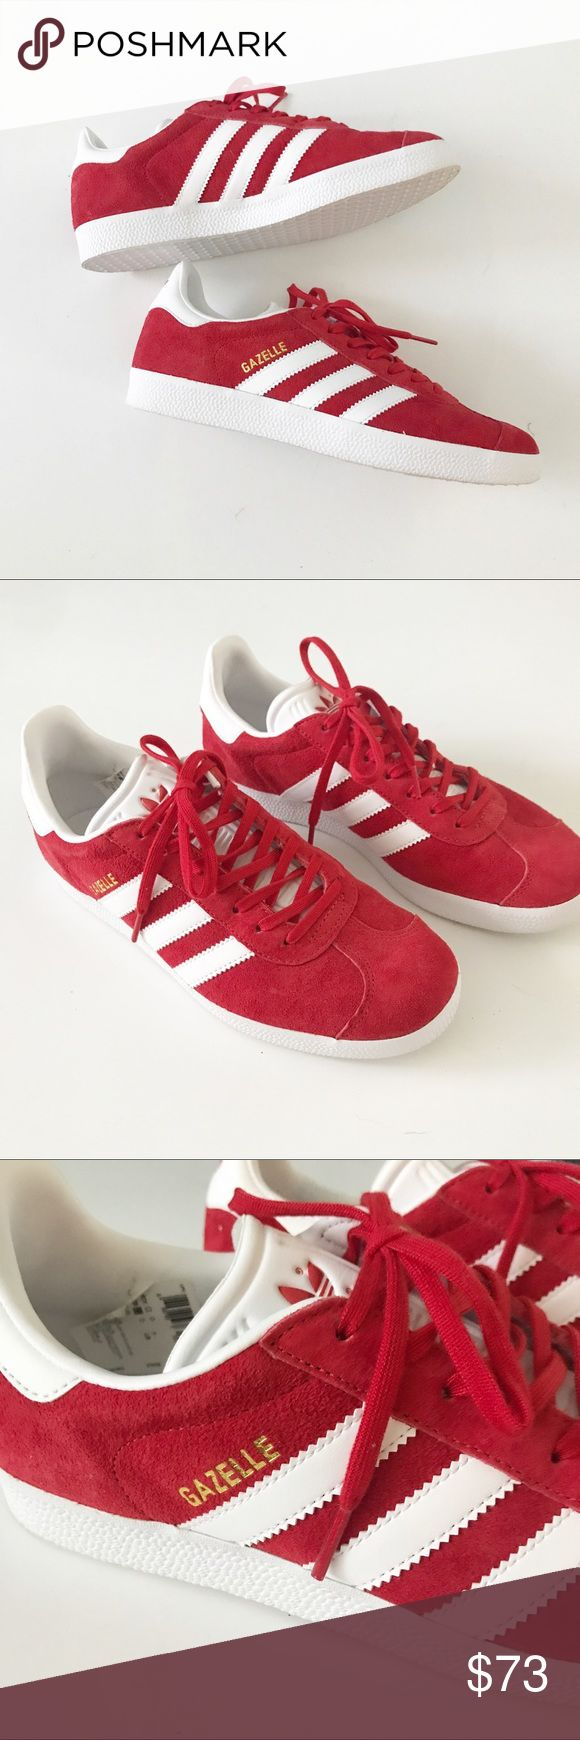 puma outlet store livermore ca adidas gazelle red ideas to decorate